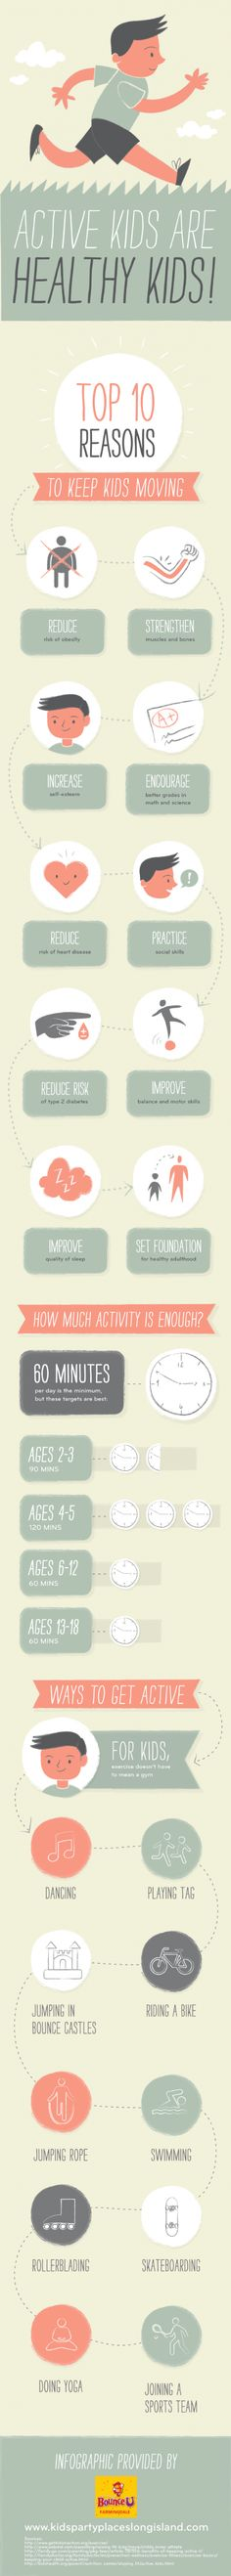 Active Kids Are Healthy Kids! Infographic health coping skills health ideas health posters health promotion health tips Pe Activities, Physical Activities, Outdoor Activities, Facts For Kids, Quotes For Kids, Fun Facts, Coping Skills, Life Skills, Pe Games Elementary